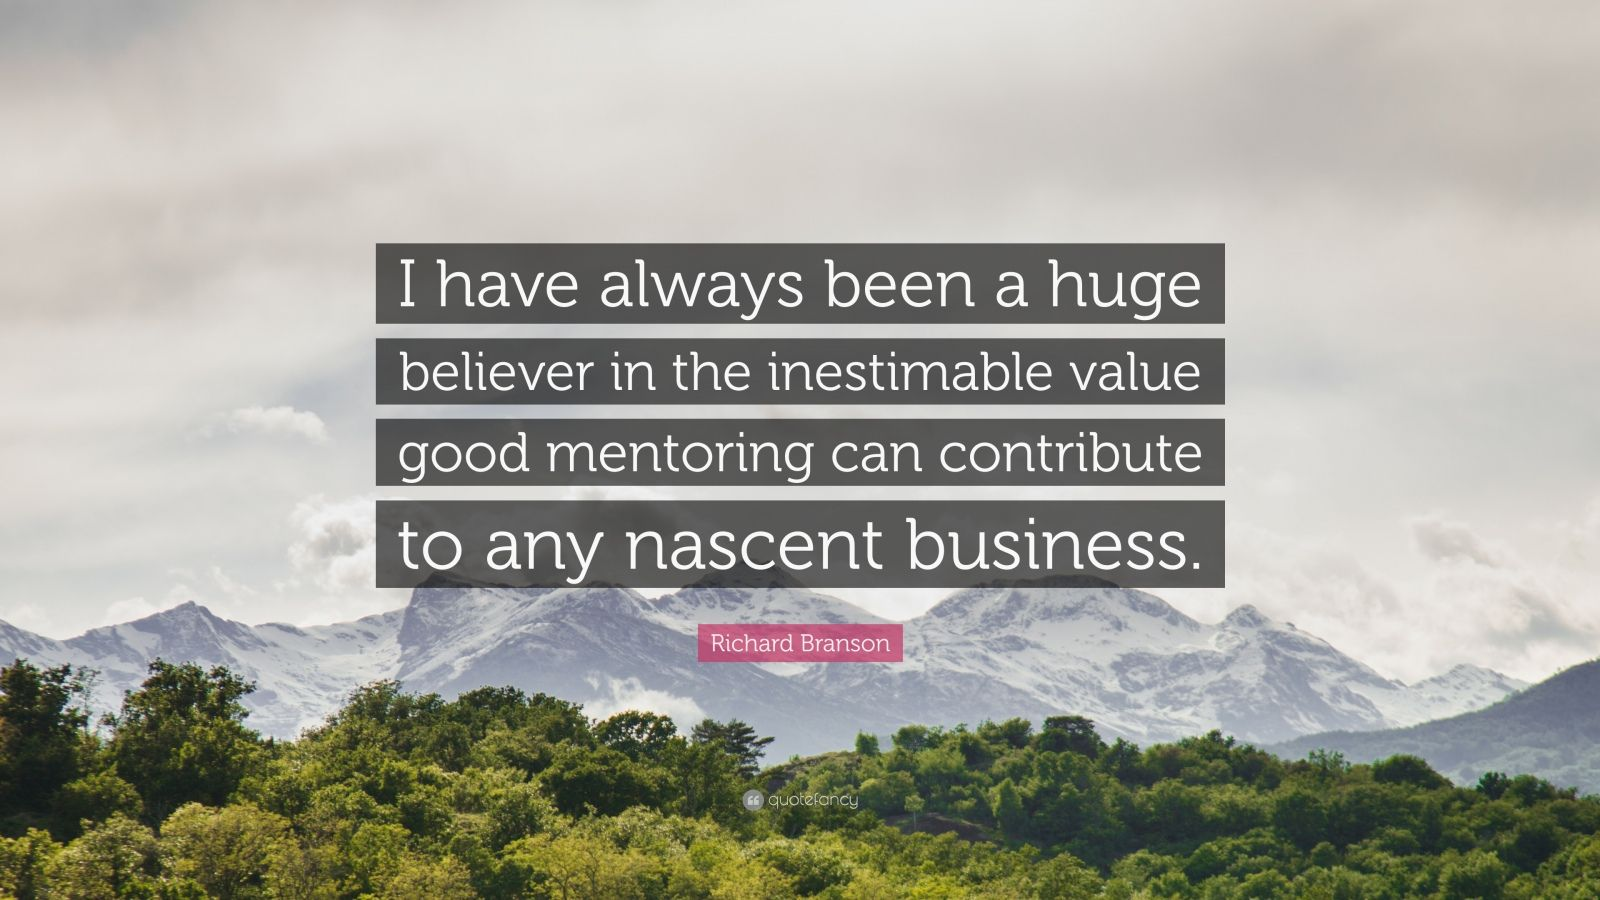 """Richard Branson Quote: """"I have always been a huge believer in the inestimable value good mentoring can contribute to any nascent business."""""""